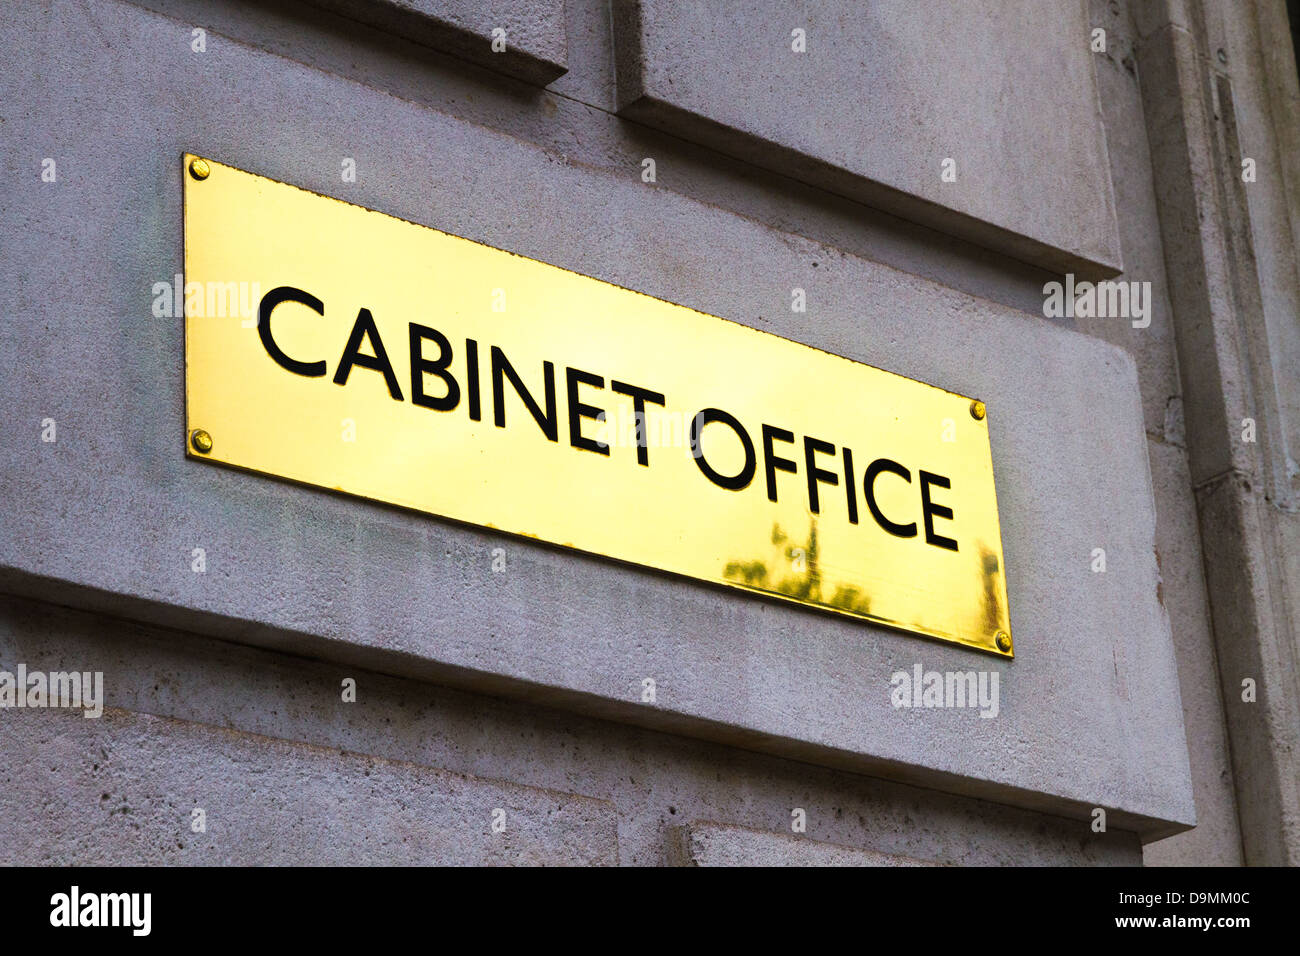 Brass Plaque / Name Plate Outside The Cabinet Office, Whitehall, London